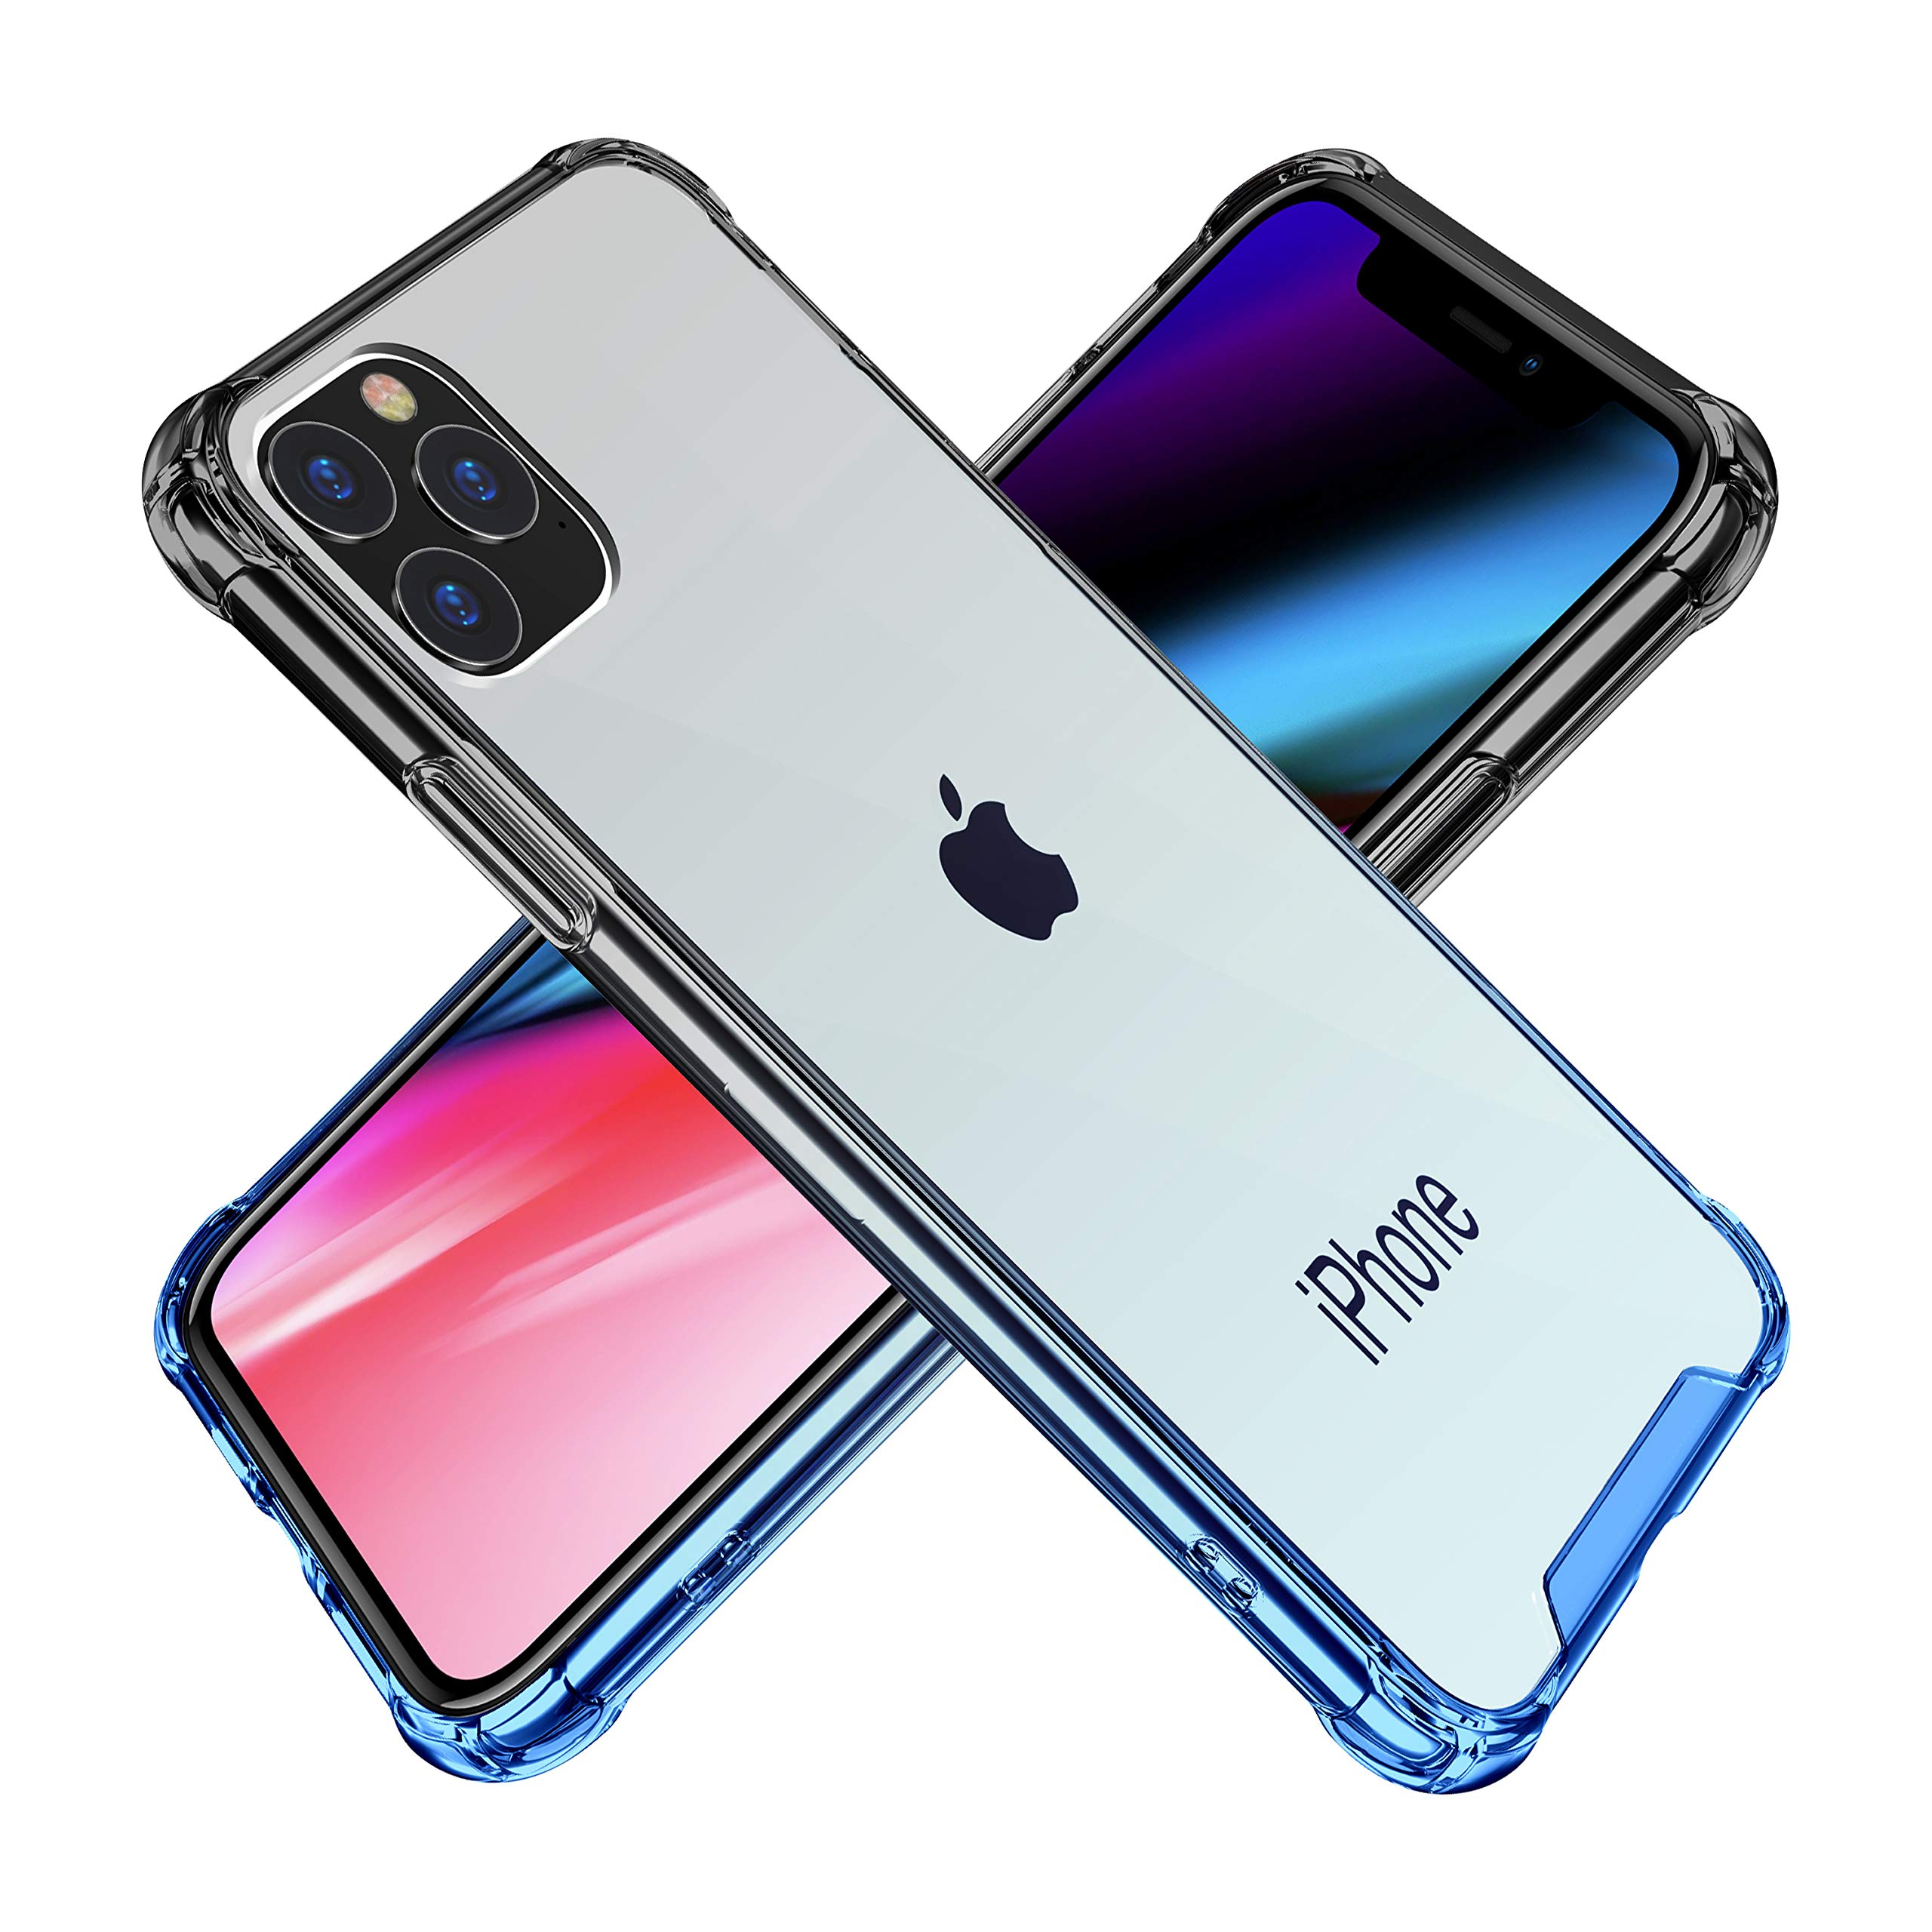 BAISRKE iPhone 11 Pro Case, Slim Shock Absorption Protective Cases Soft TPU Bumper & Hard Plastic Back Cover for iPhone 11 Pro 2019 [5.8 inch] - Black Blue Gradient